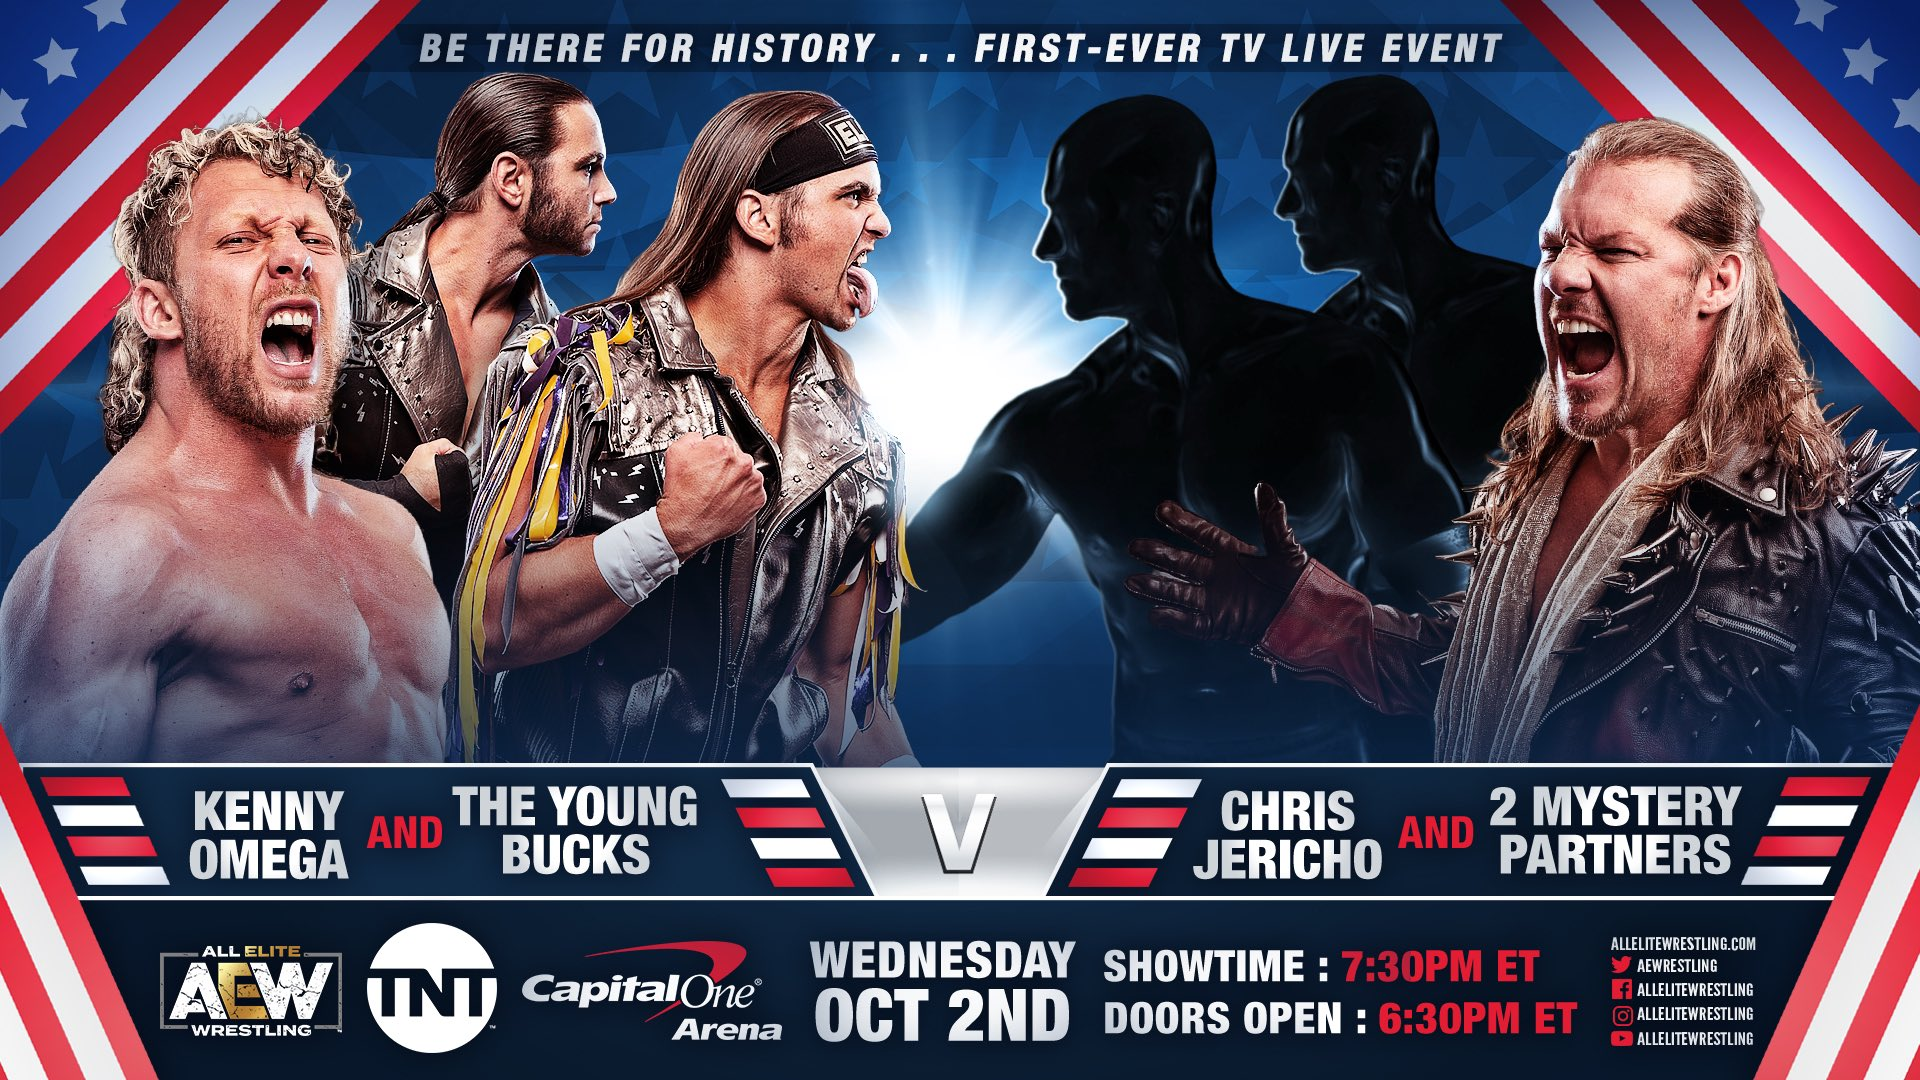 The Elite vs. Chris Jericho & Mystery Partners added to AEW's TNT debut